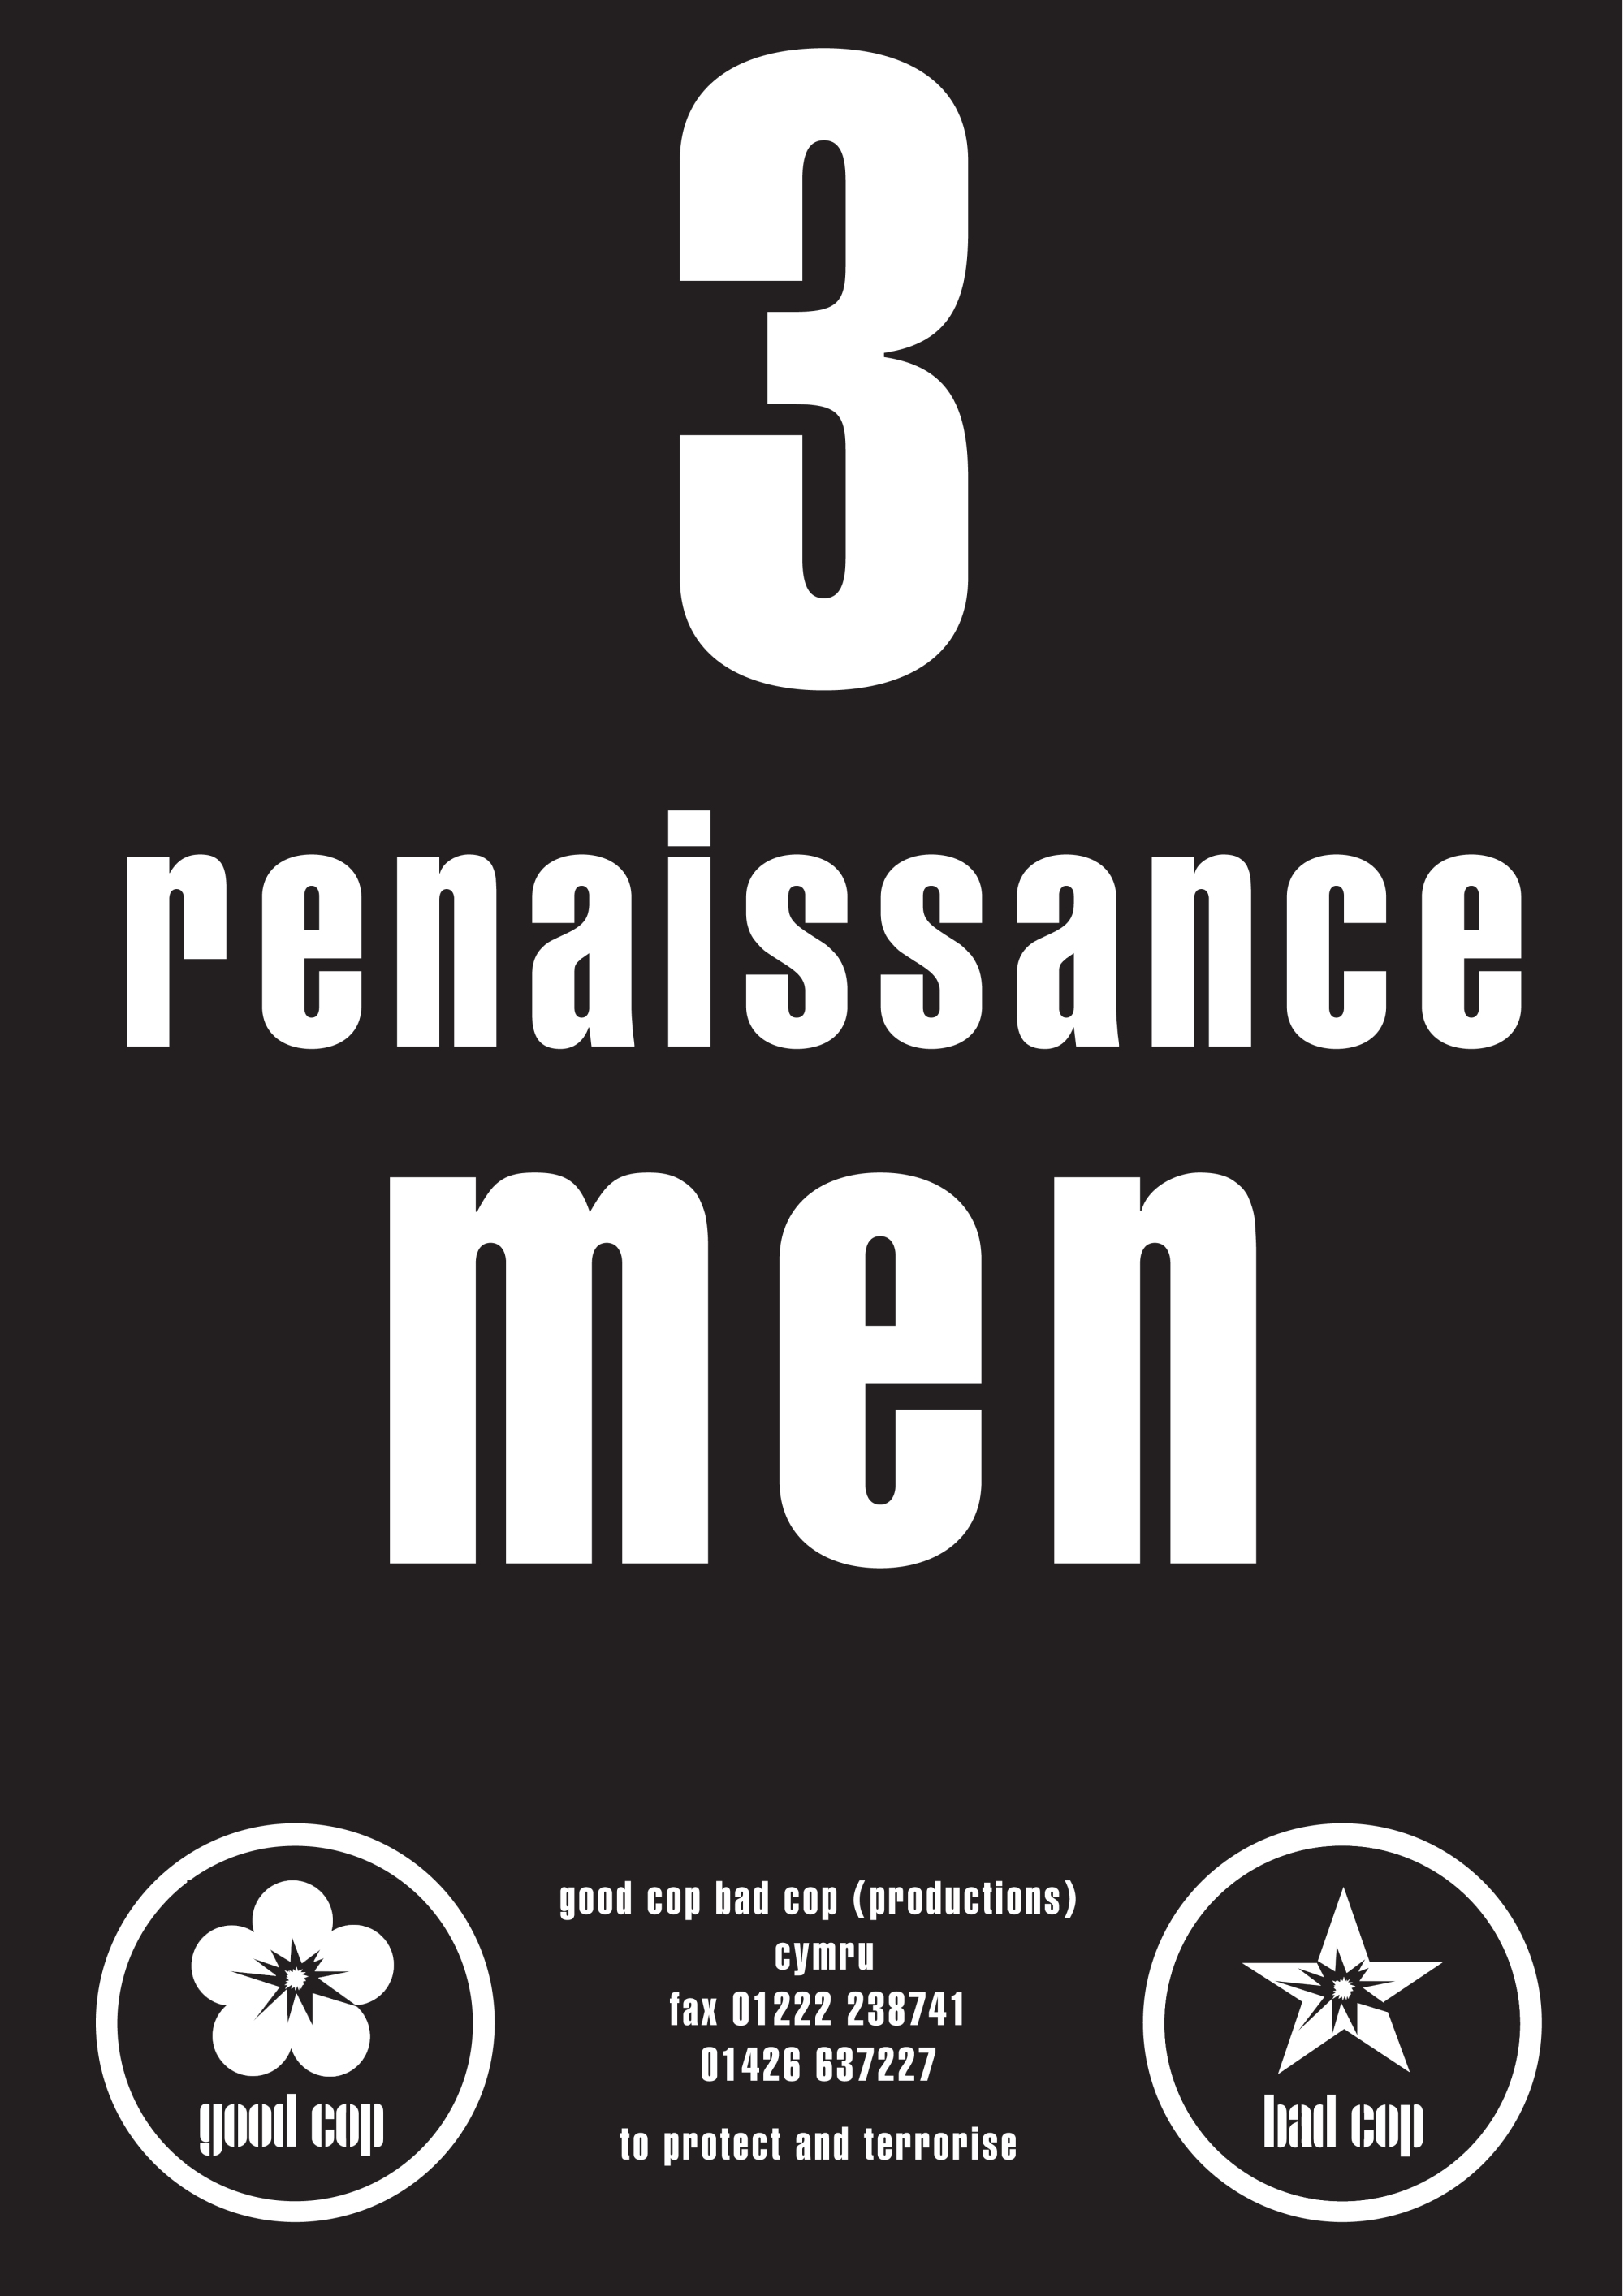 3 renaissance men flyer copy